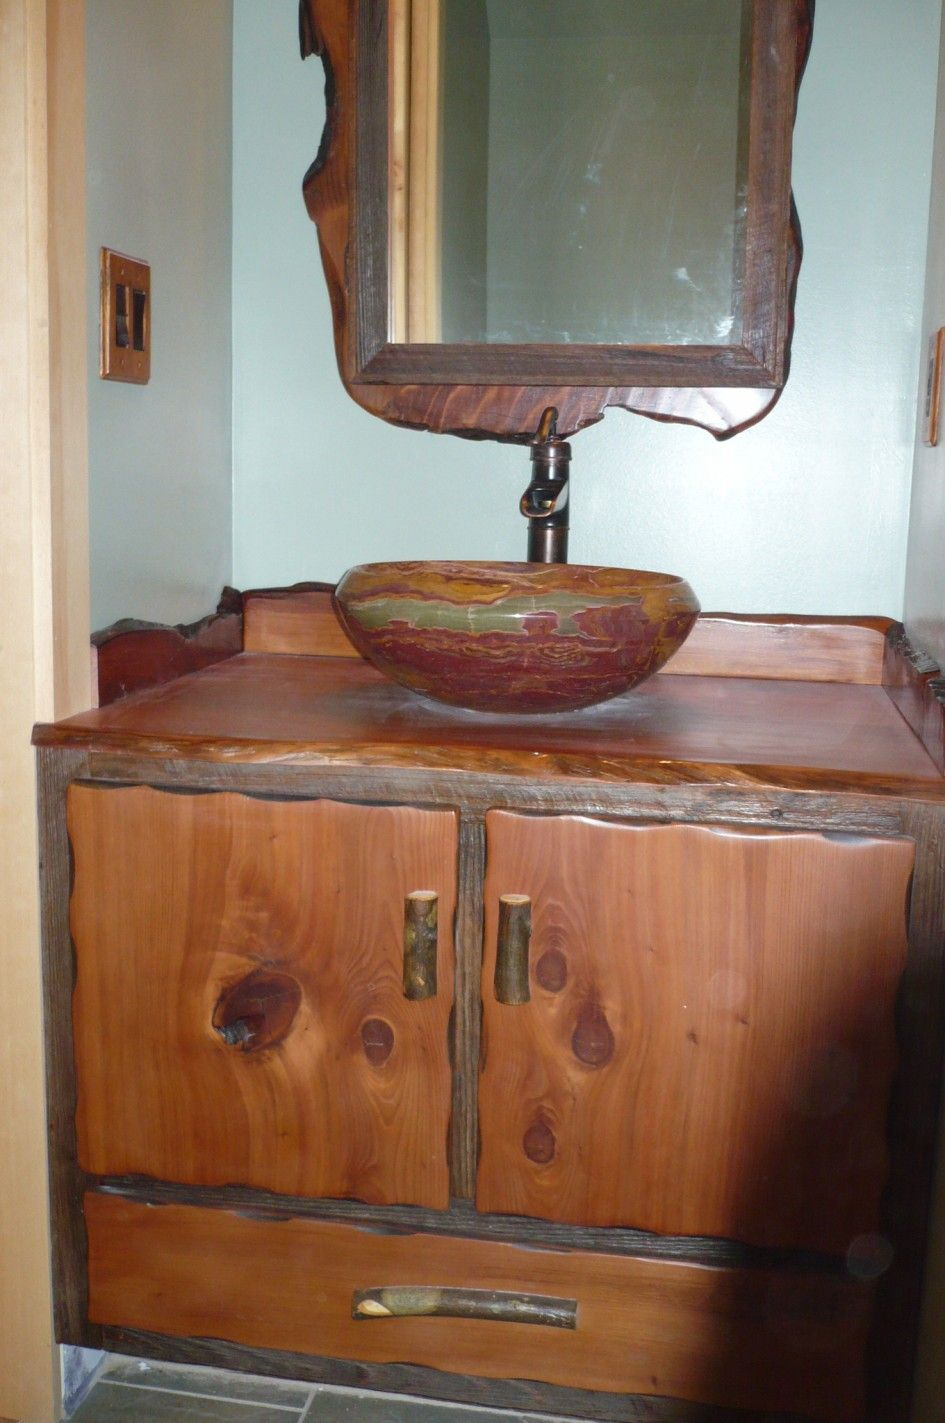 Bathroom Terrific Single Bowl Pottery Sink with Teak Wood